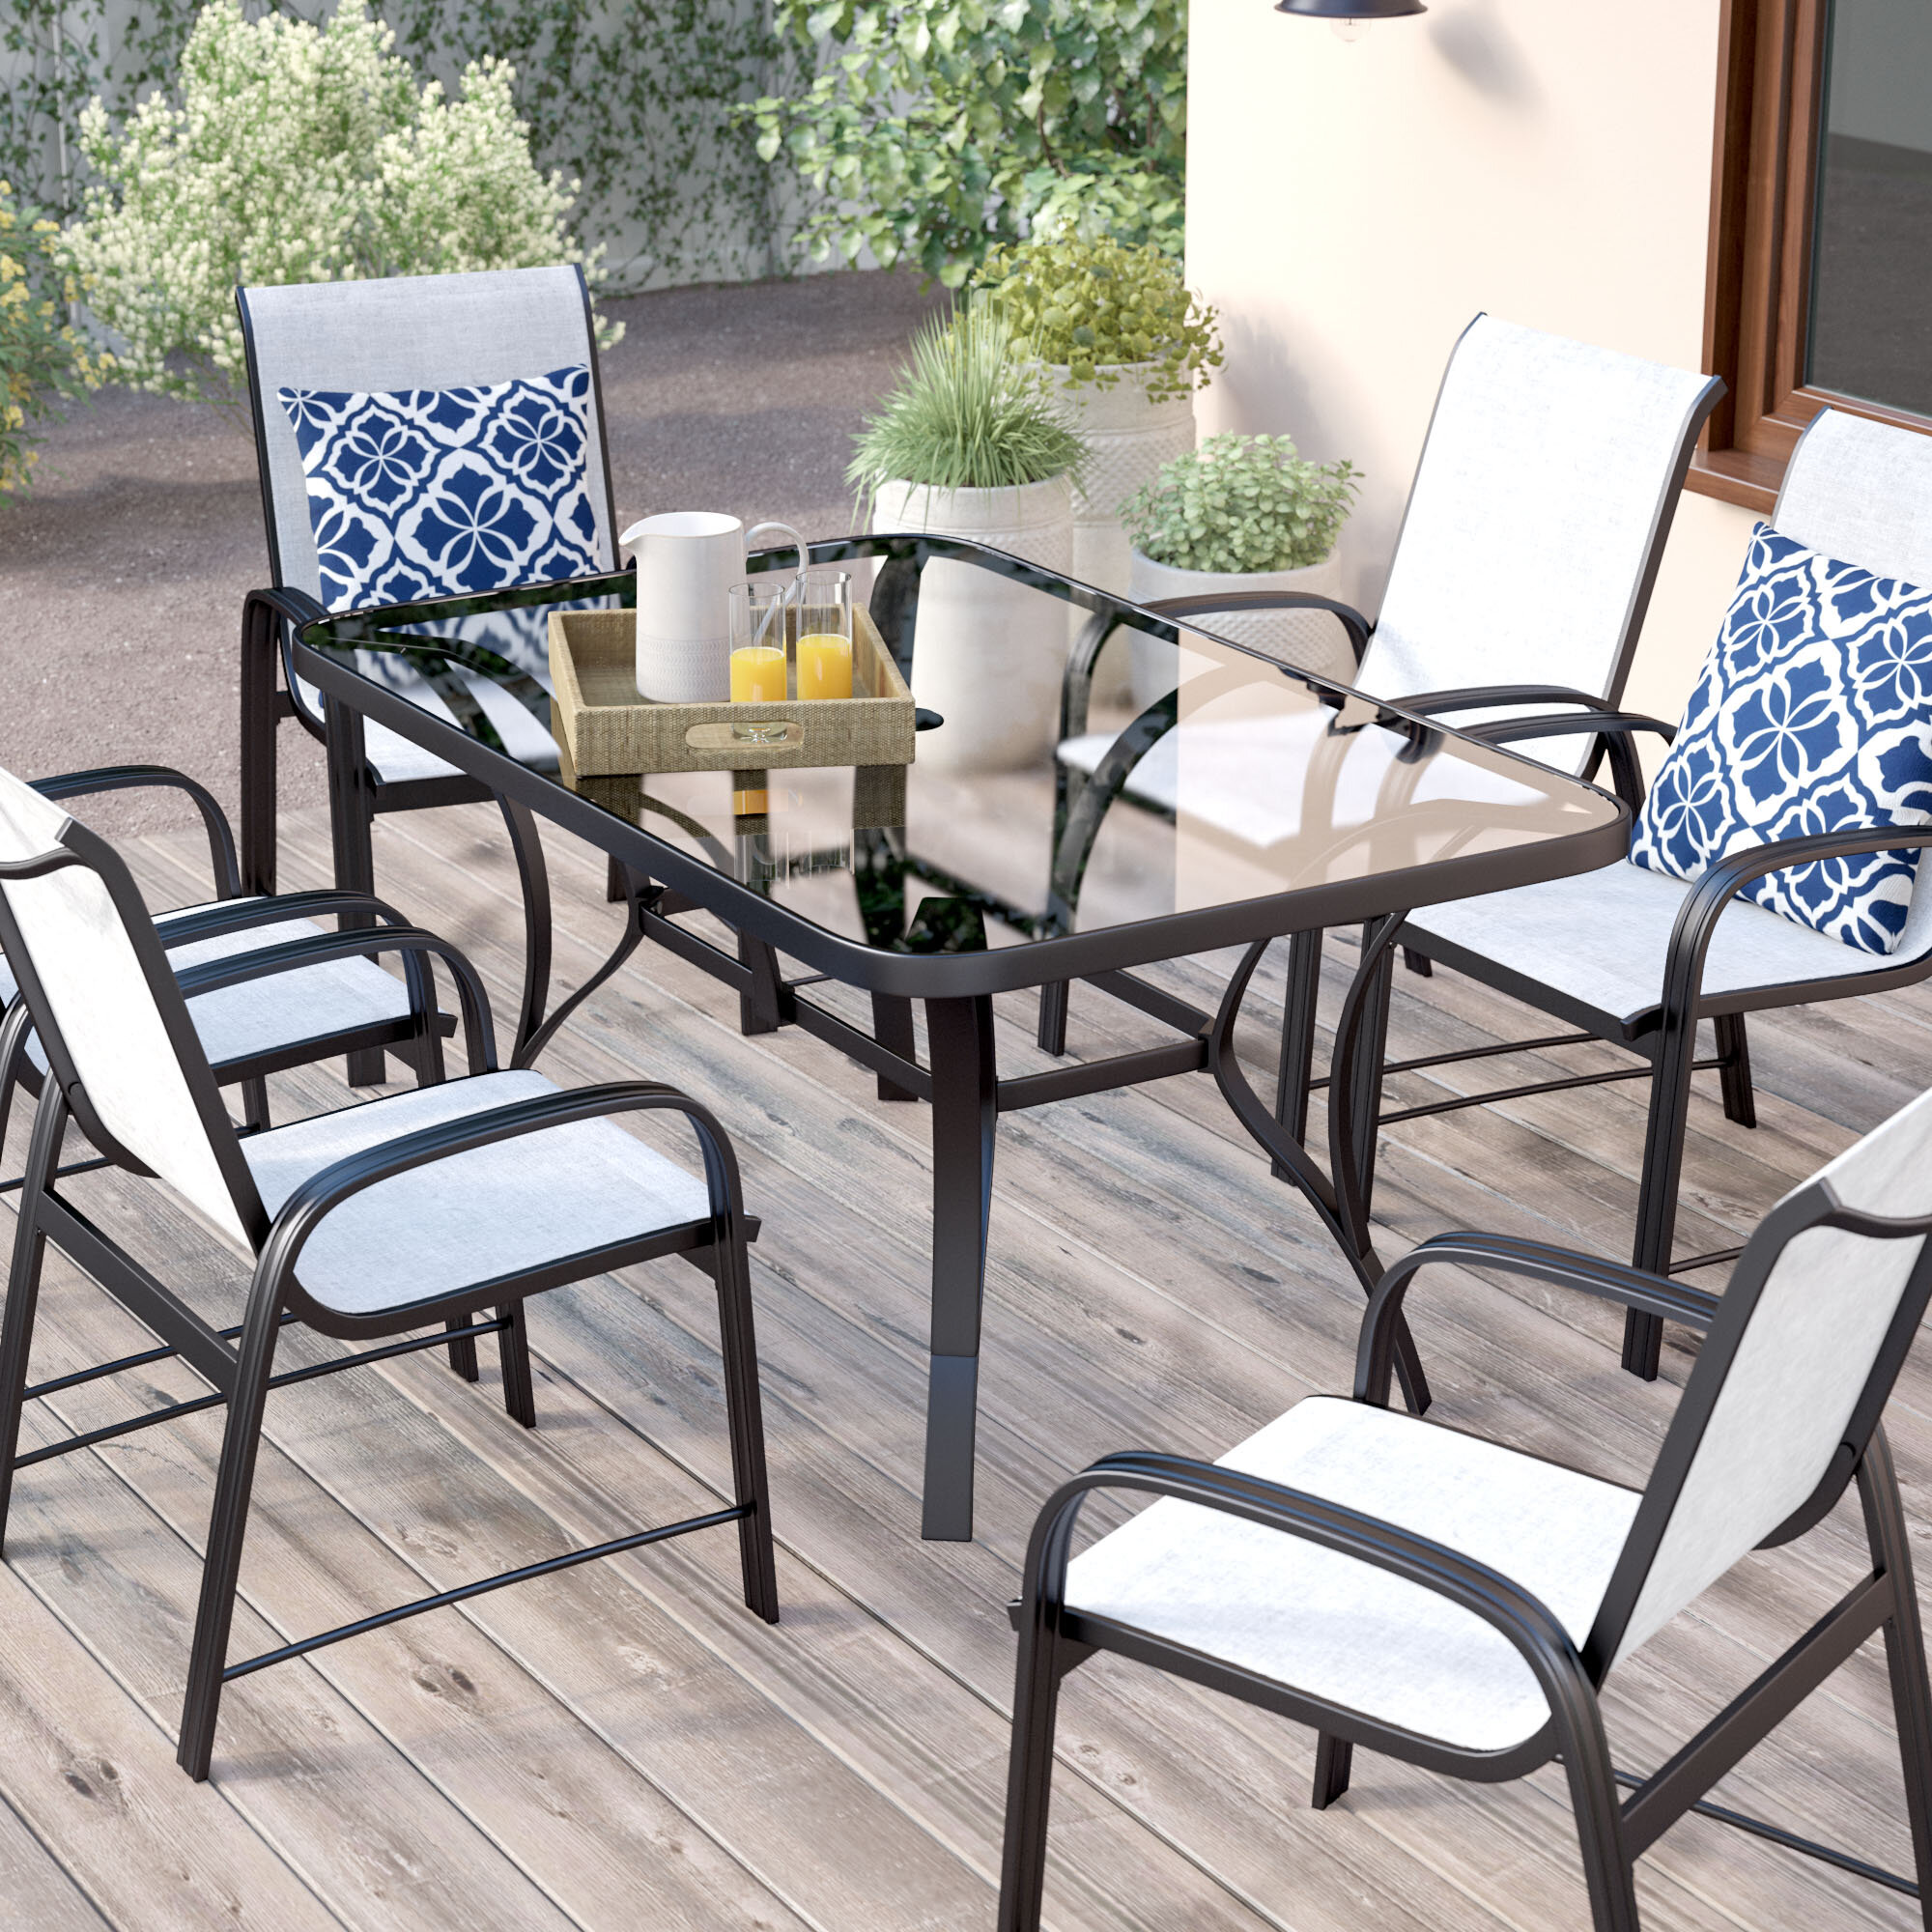 dp aluminum dark dining amazon garden com patio brown cosco ridge piece outdoor set serene